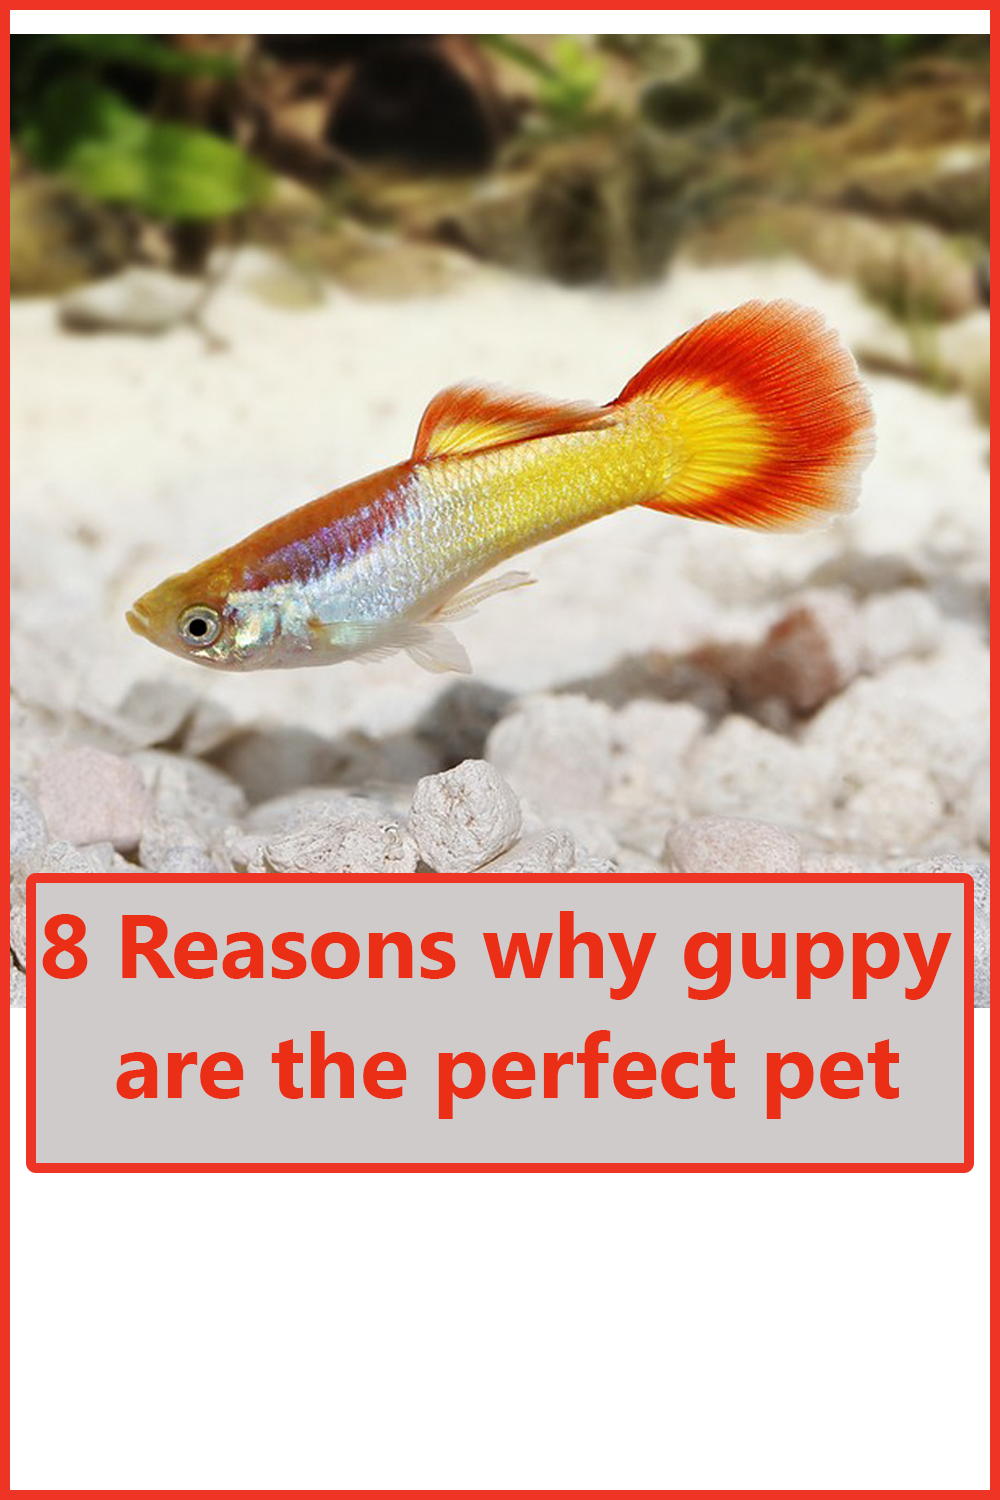 8 Reasons Why Guppy Are The Perfect Pet Guppy Fish Fresh Water Fish Tank Guppy